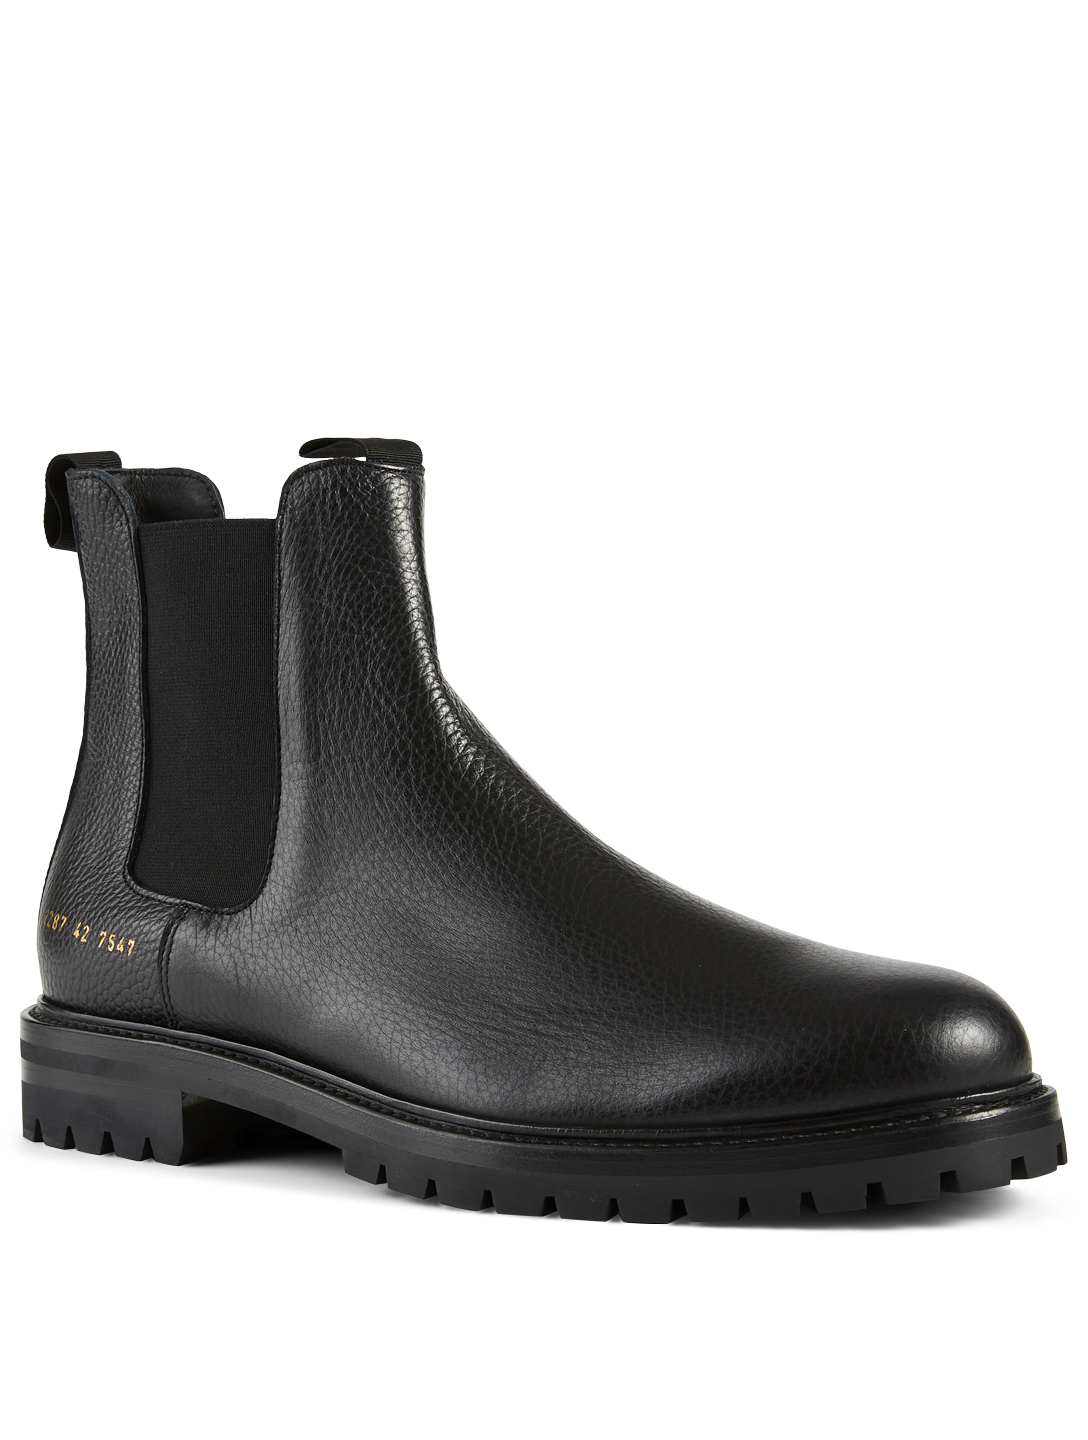 COMMON PROJECTS Winter Bumpy Leather Chelsea Boots Men's Black